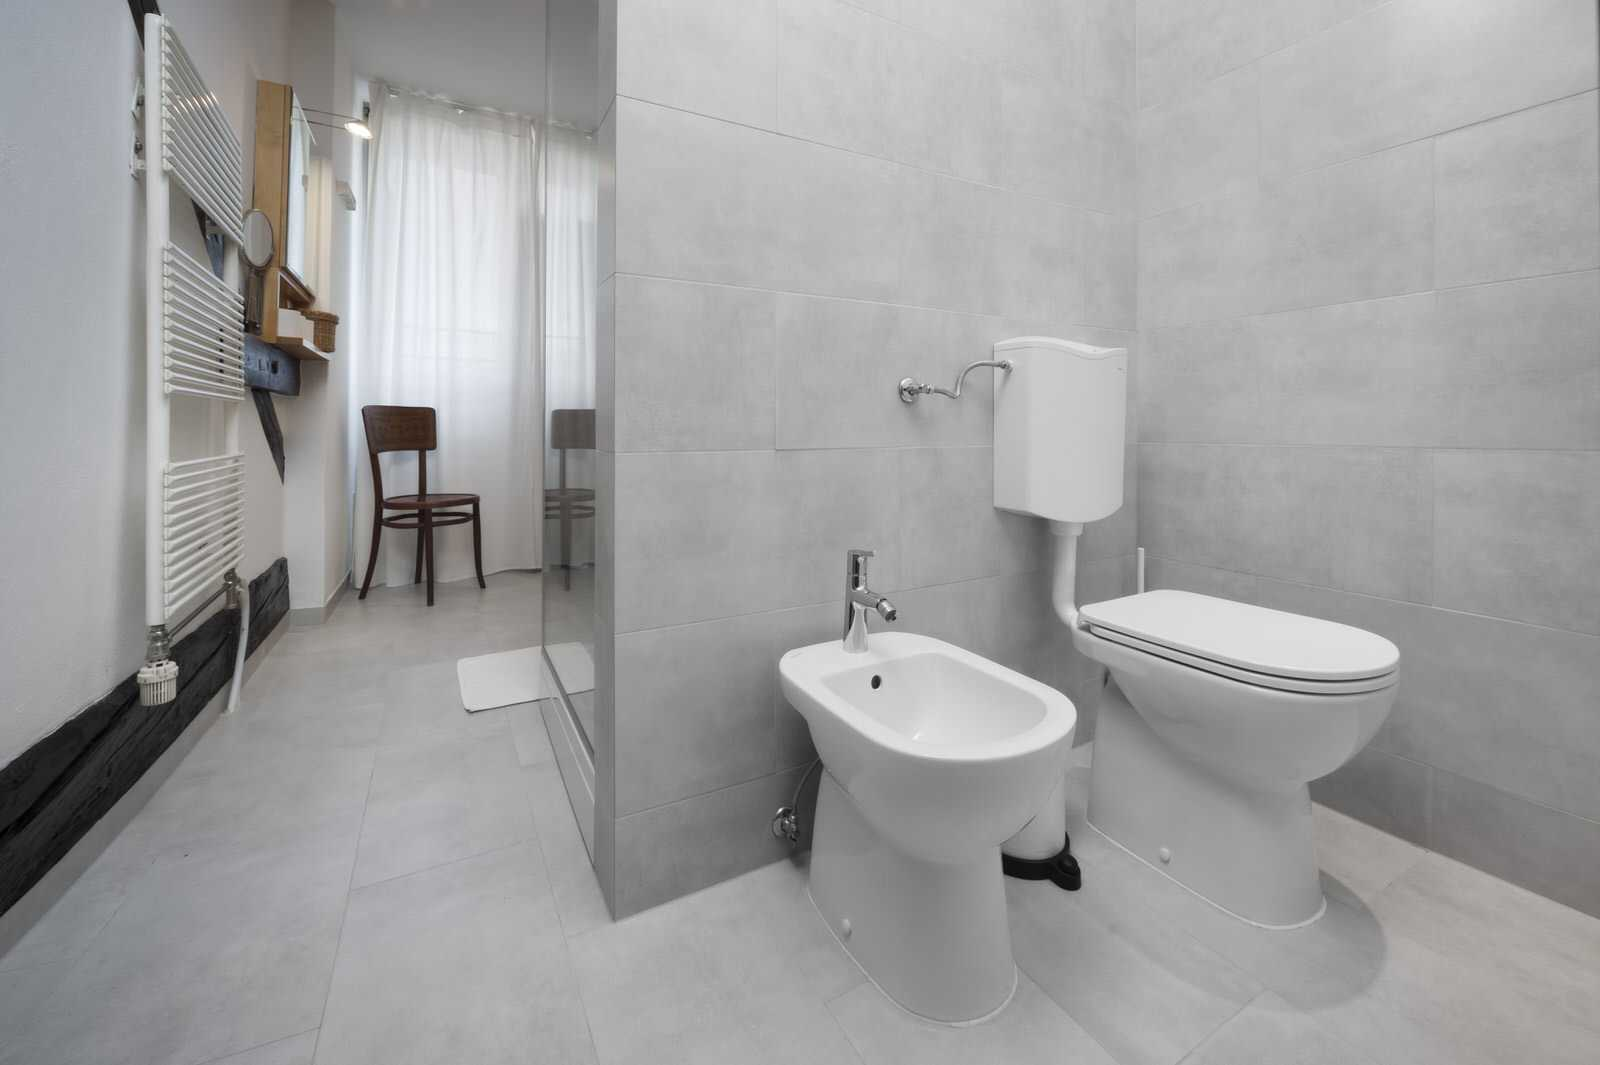 The bathroom is modern.